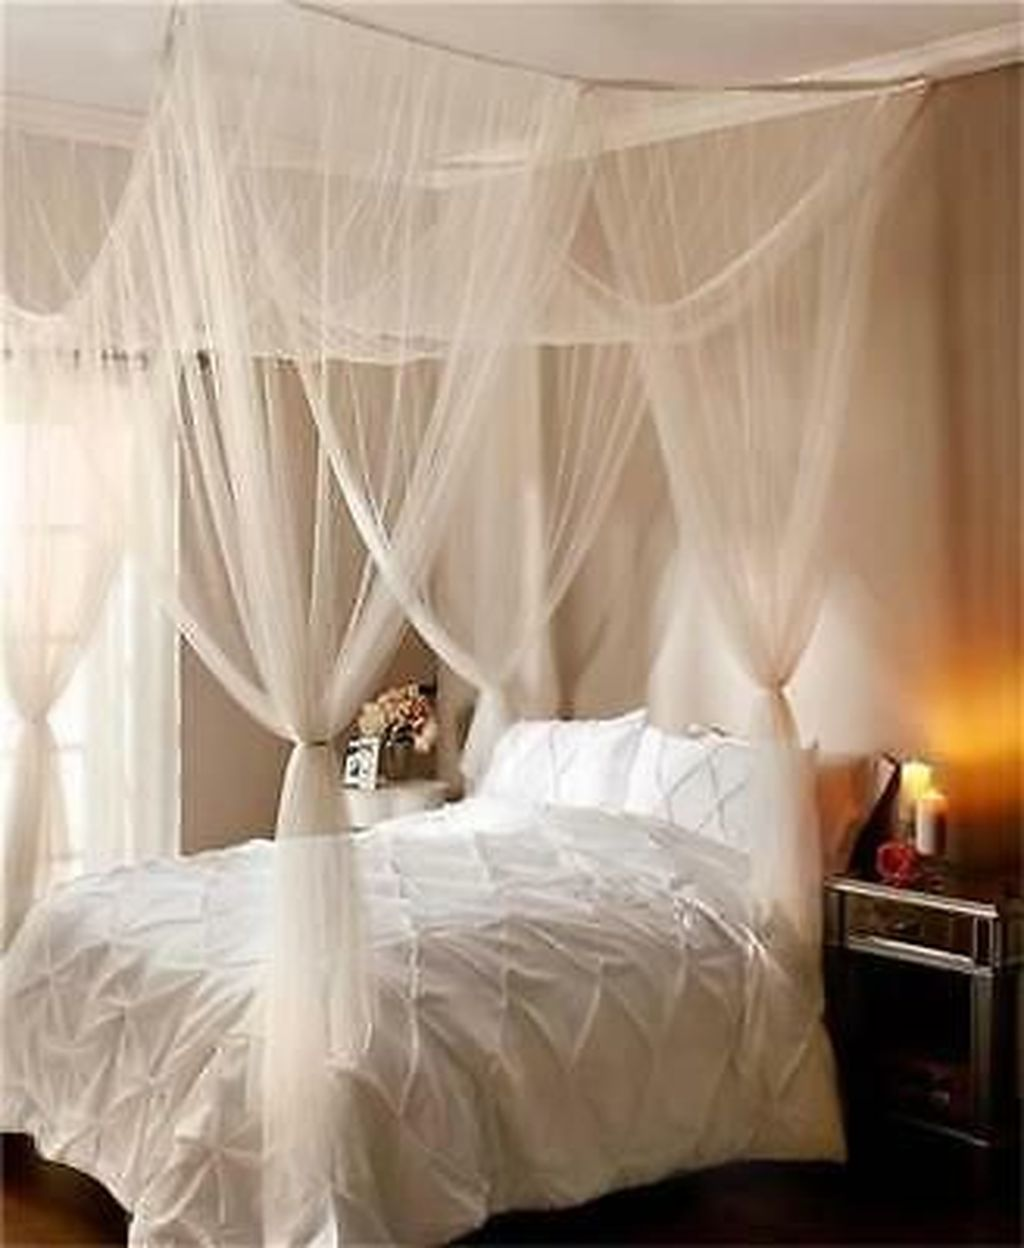 Lovely Romantic Canopy Bed Design Ideas For Your Bedroom 29